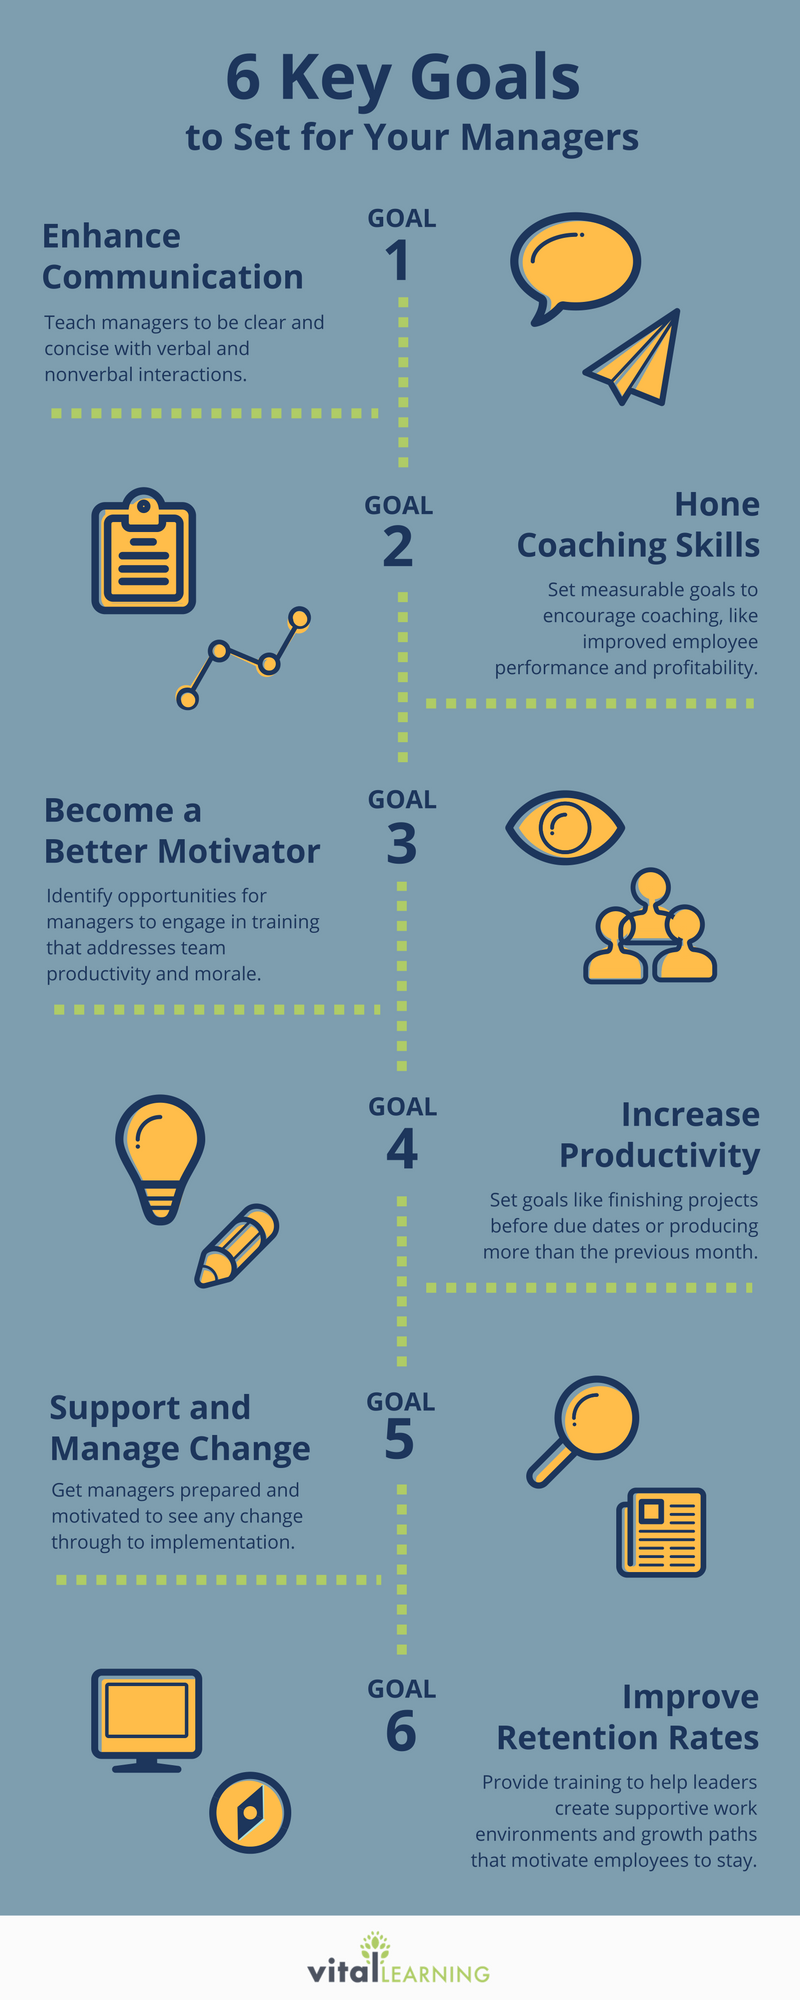 6 Professional Development Goals To Set For Your Managers